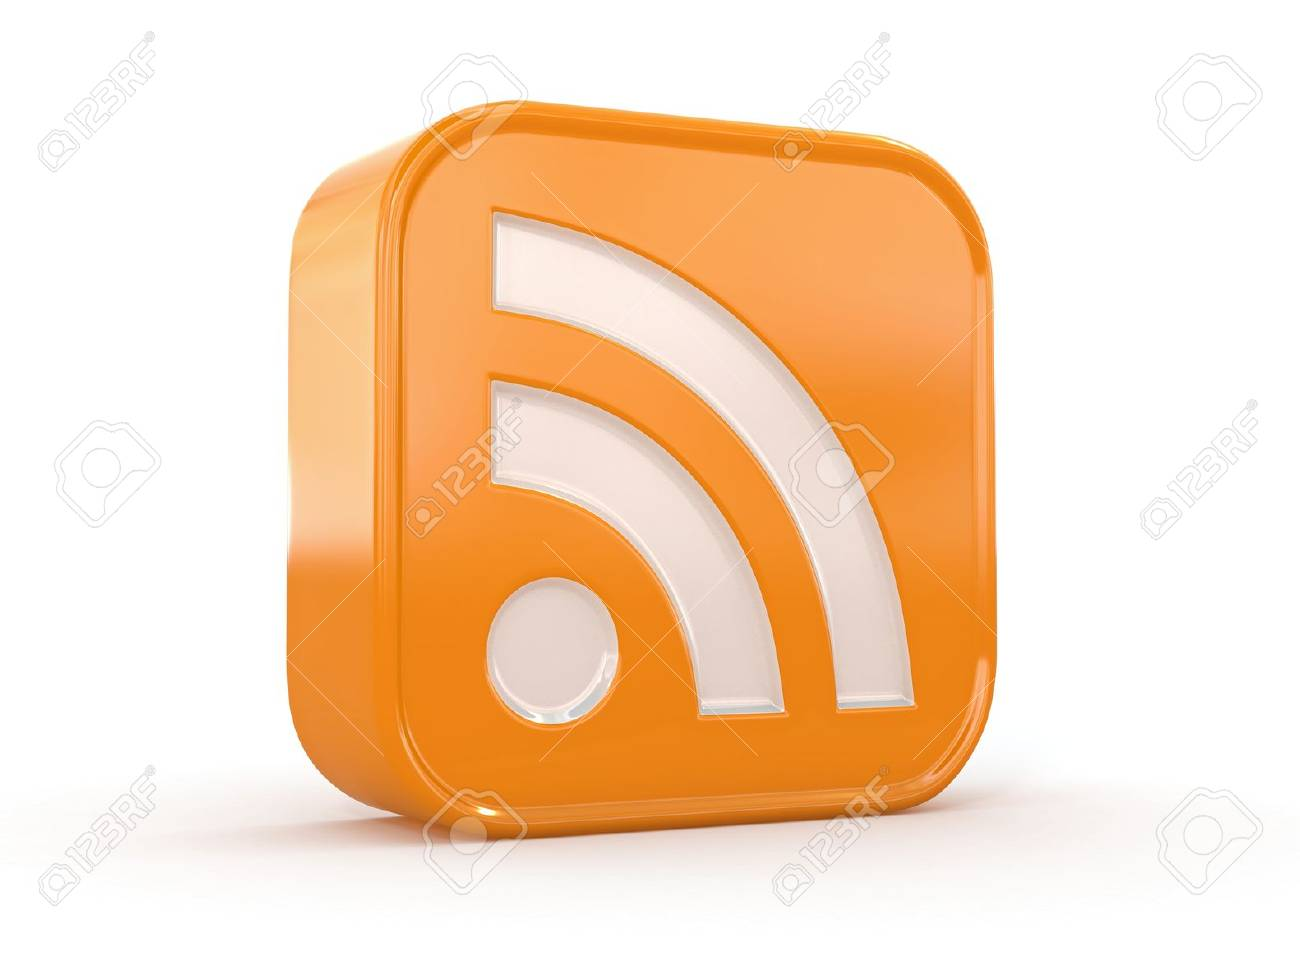 Rss or feed icon on white isolated background  3d Standard-Bild - 13282611